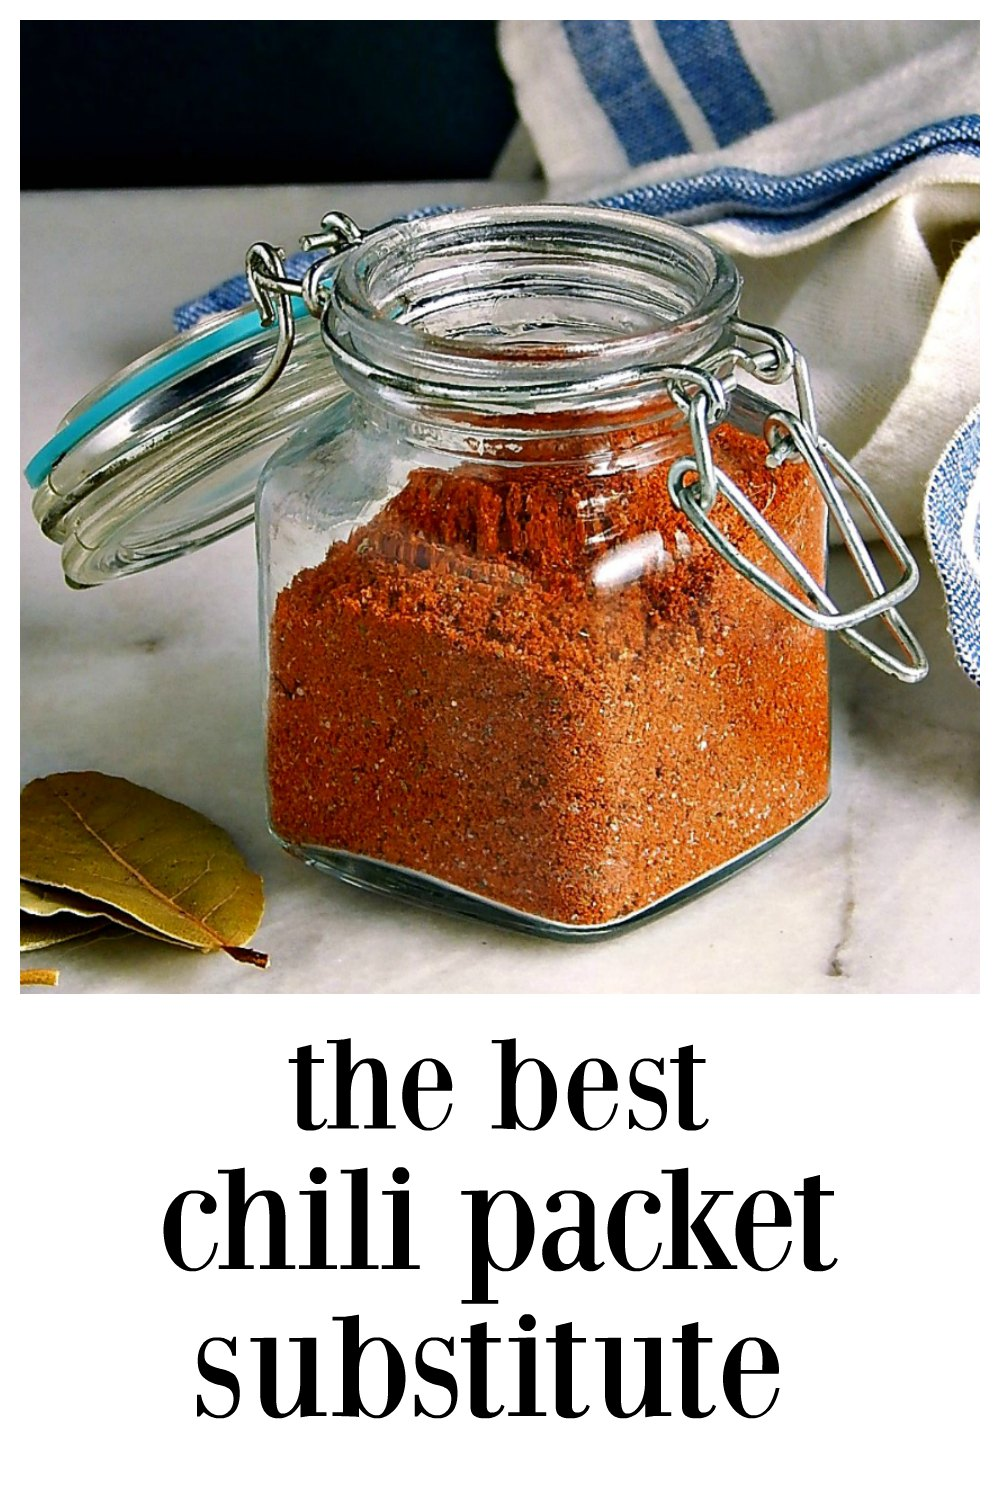 Up your Chili game with this customized Substitute for Chili Packet. This is outstanding and family-friendly, with options for more heat. #ChiliPacketSubstitute #HomemadeChiliSeasoning #SubstituteForChiliPacket